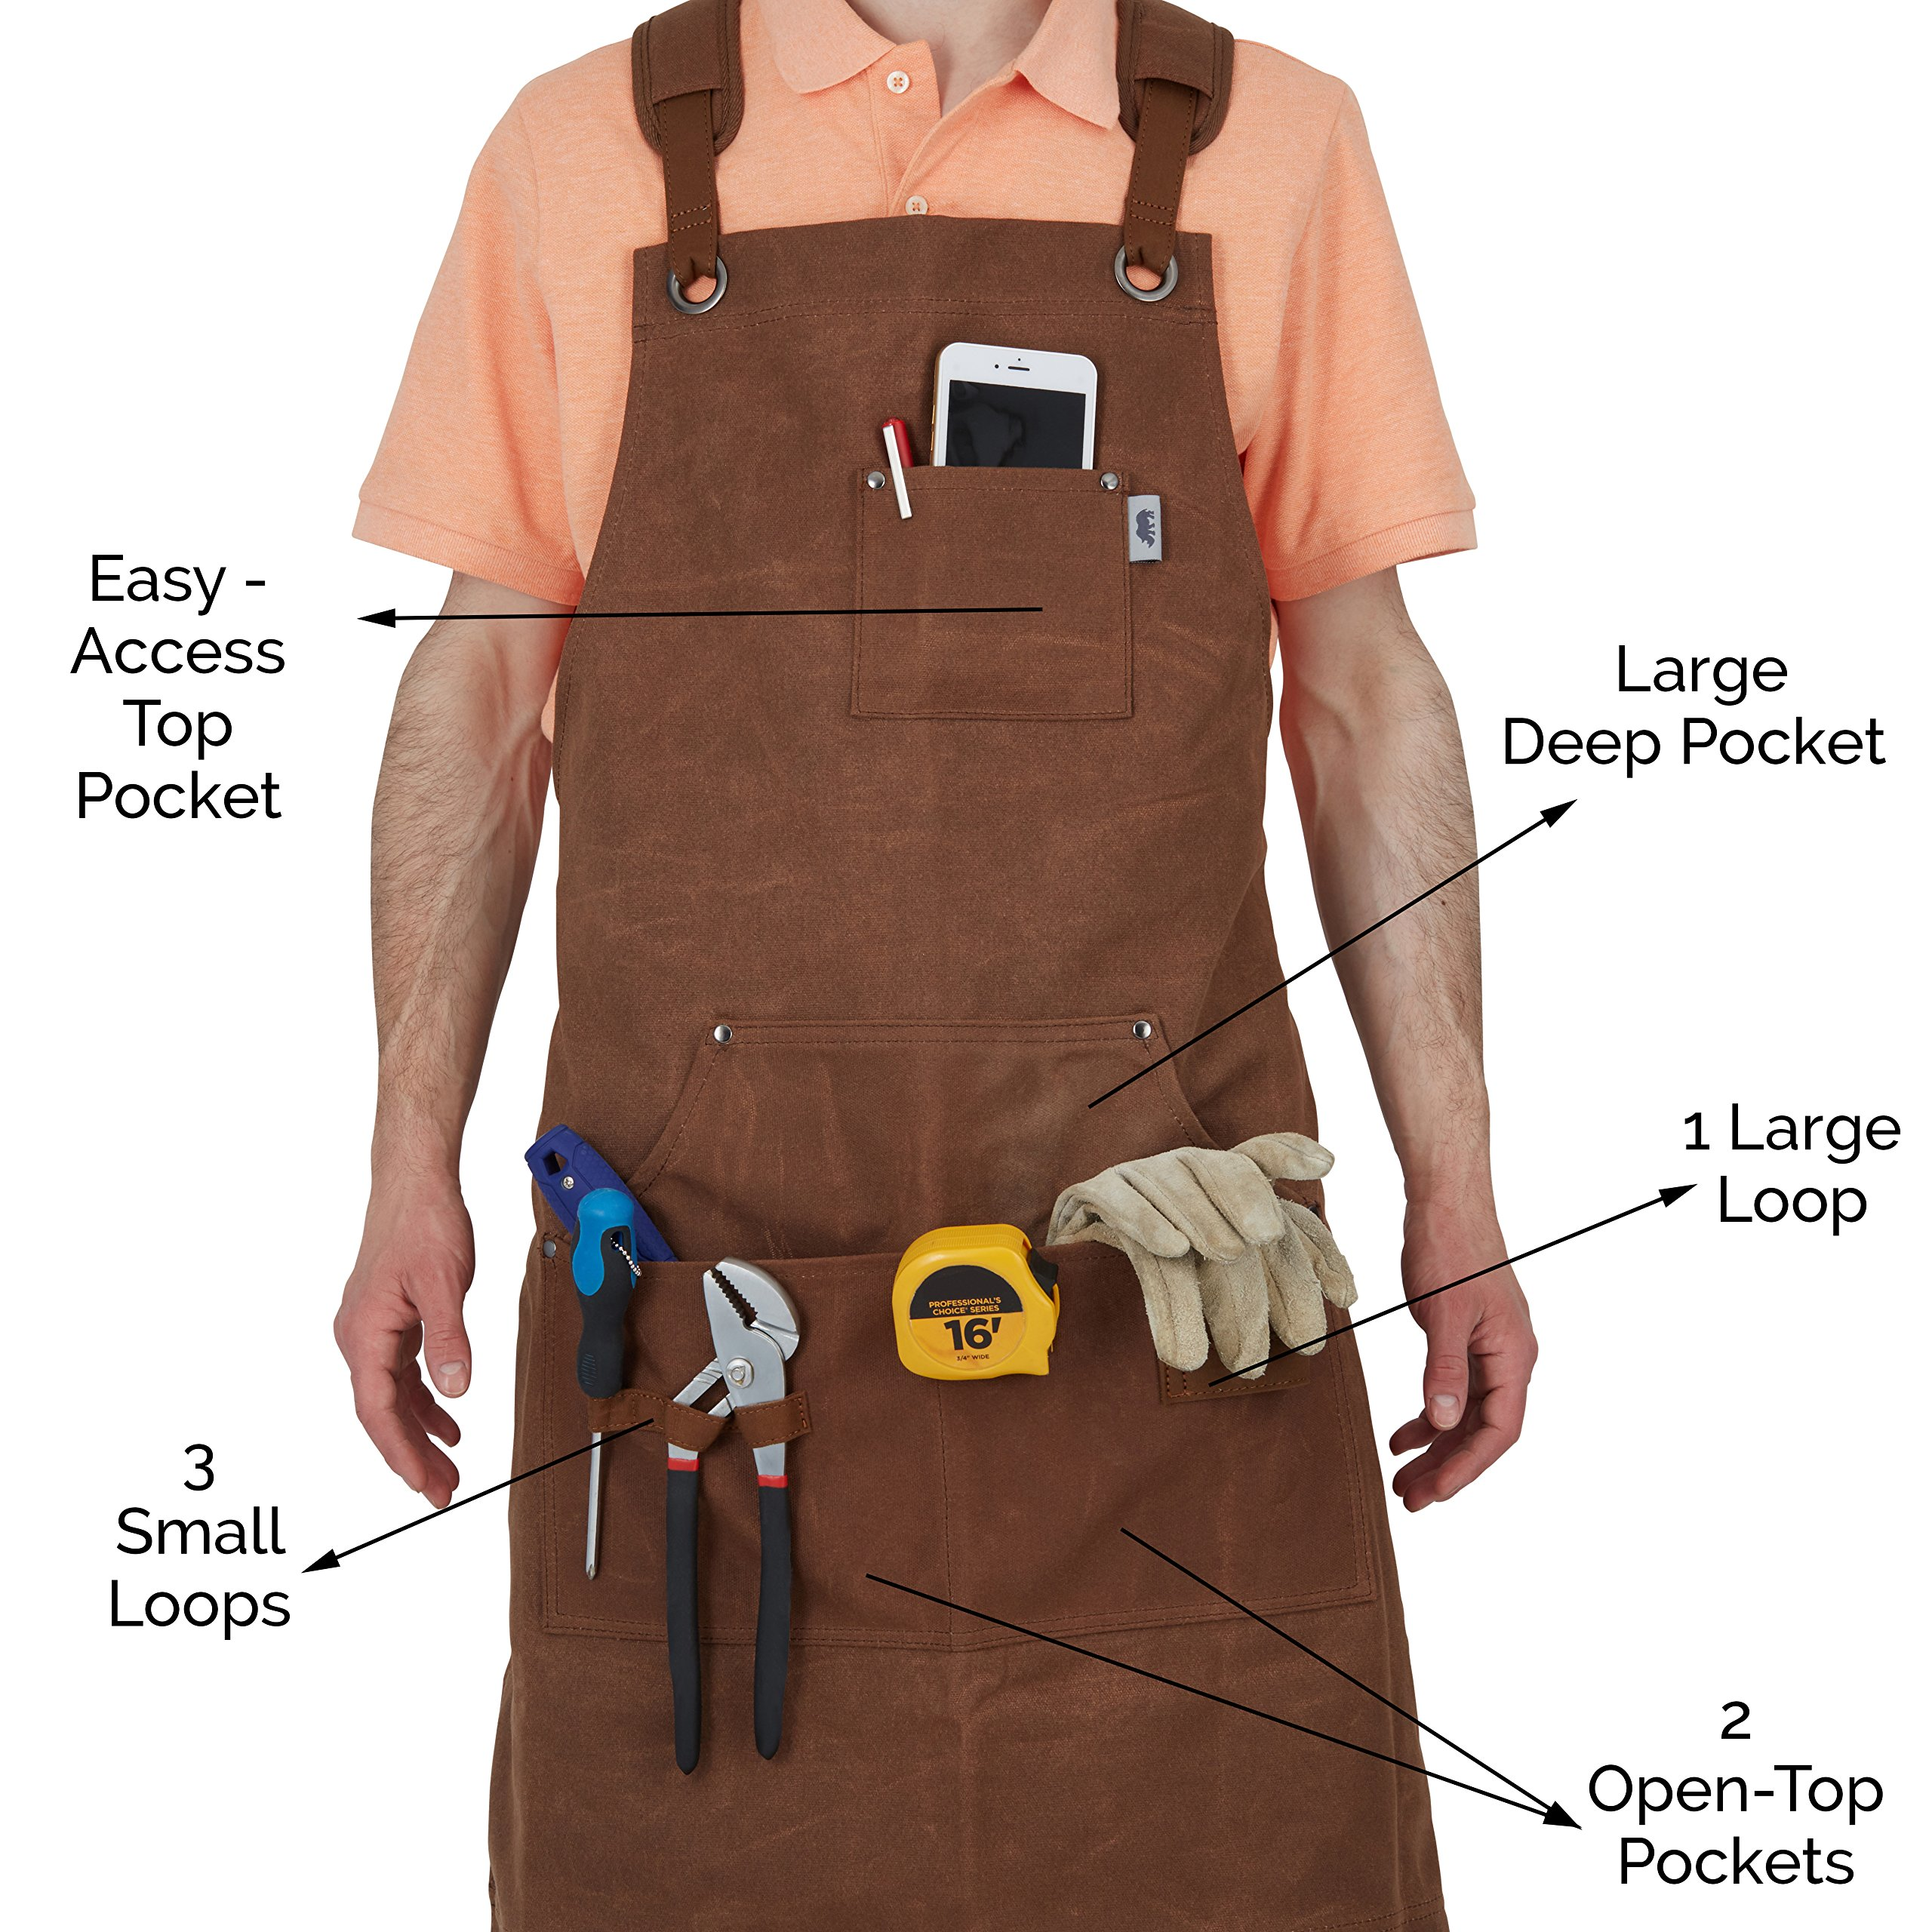 Heavy-Duty Waxed-Canvas Work Apron for Men and Women with Pockets for Tools Cross-Back Straps  – Adjustable from M to XXL (Brown) by Premium Rhino (Image #5)